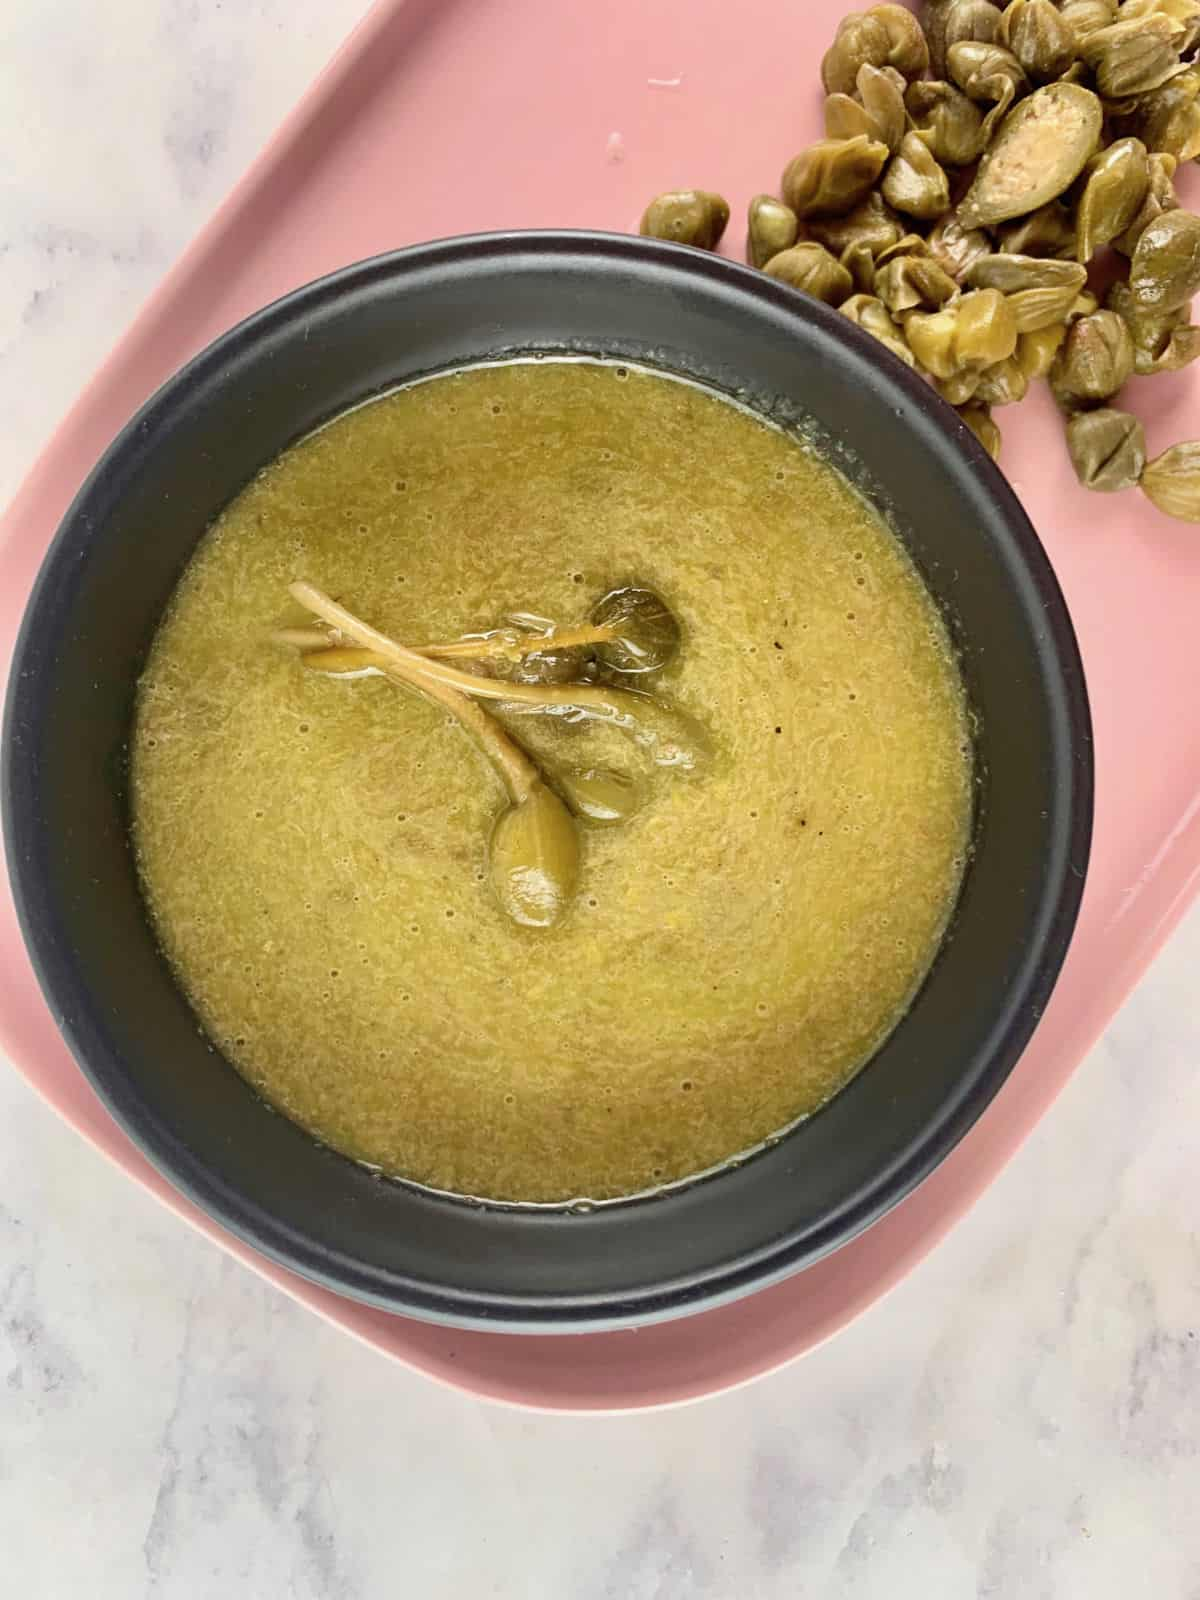 LEMON CAPER DRESSING IN BLACK BOWL ON PINK PLATTER WITH CAPERS ON THE SIDE